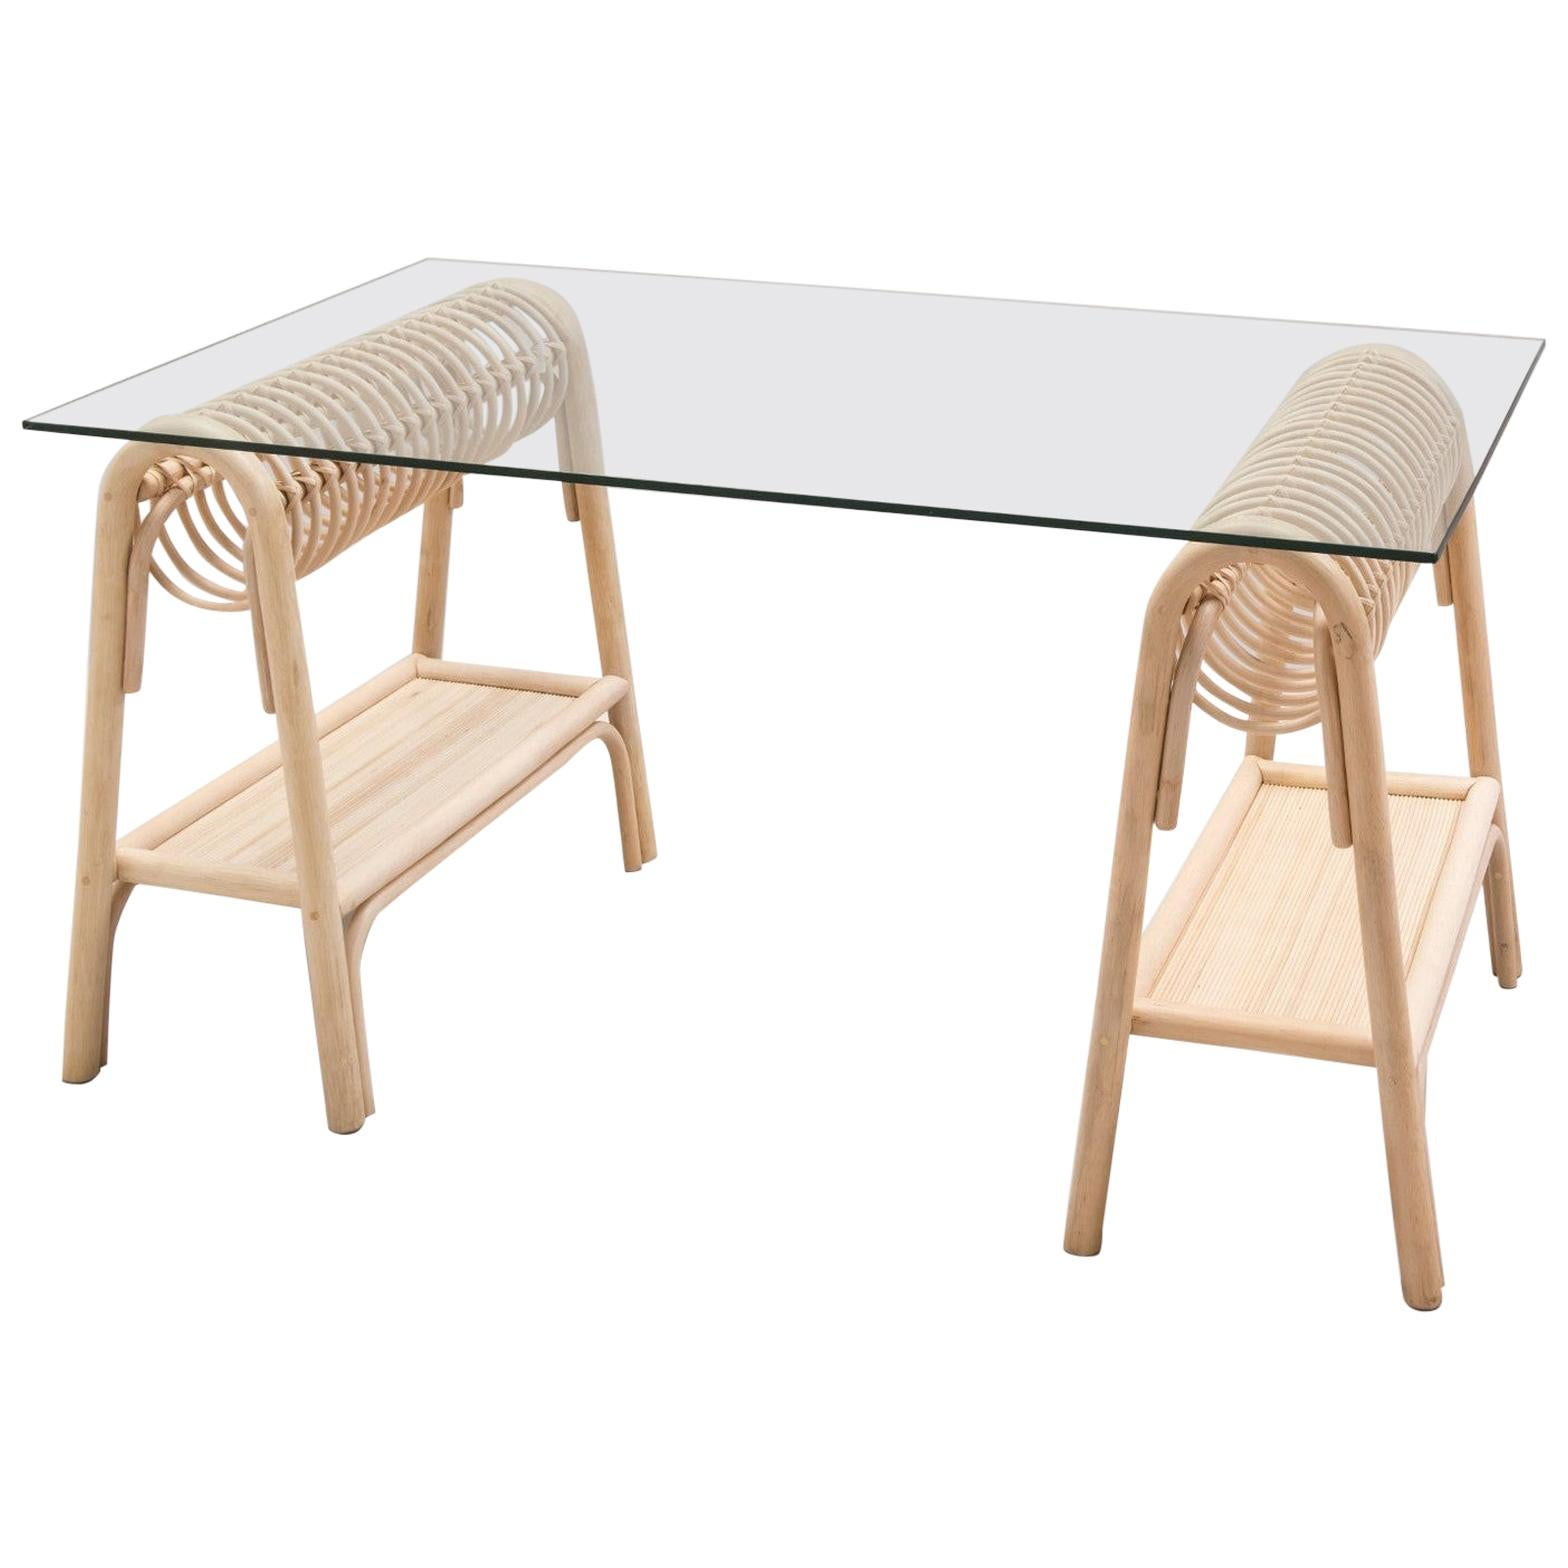 French Modern Design Rattan and Glass Writing Table or Desk